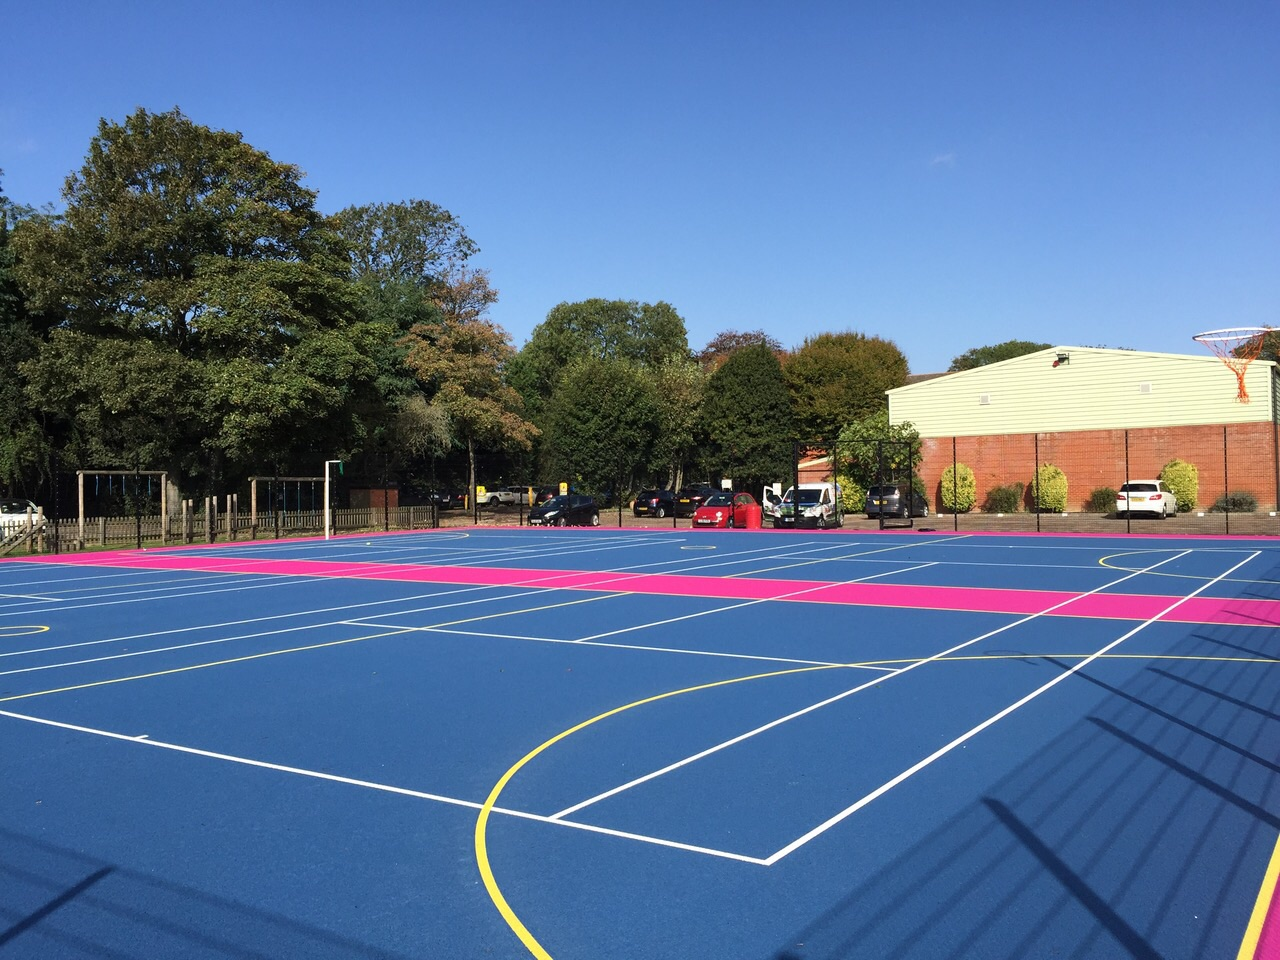 Picture of Alleyn Court Preparatory School Tennis Courts